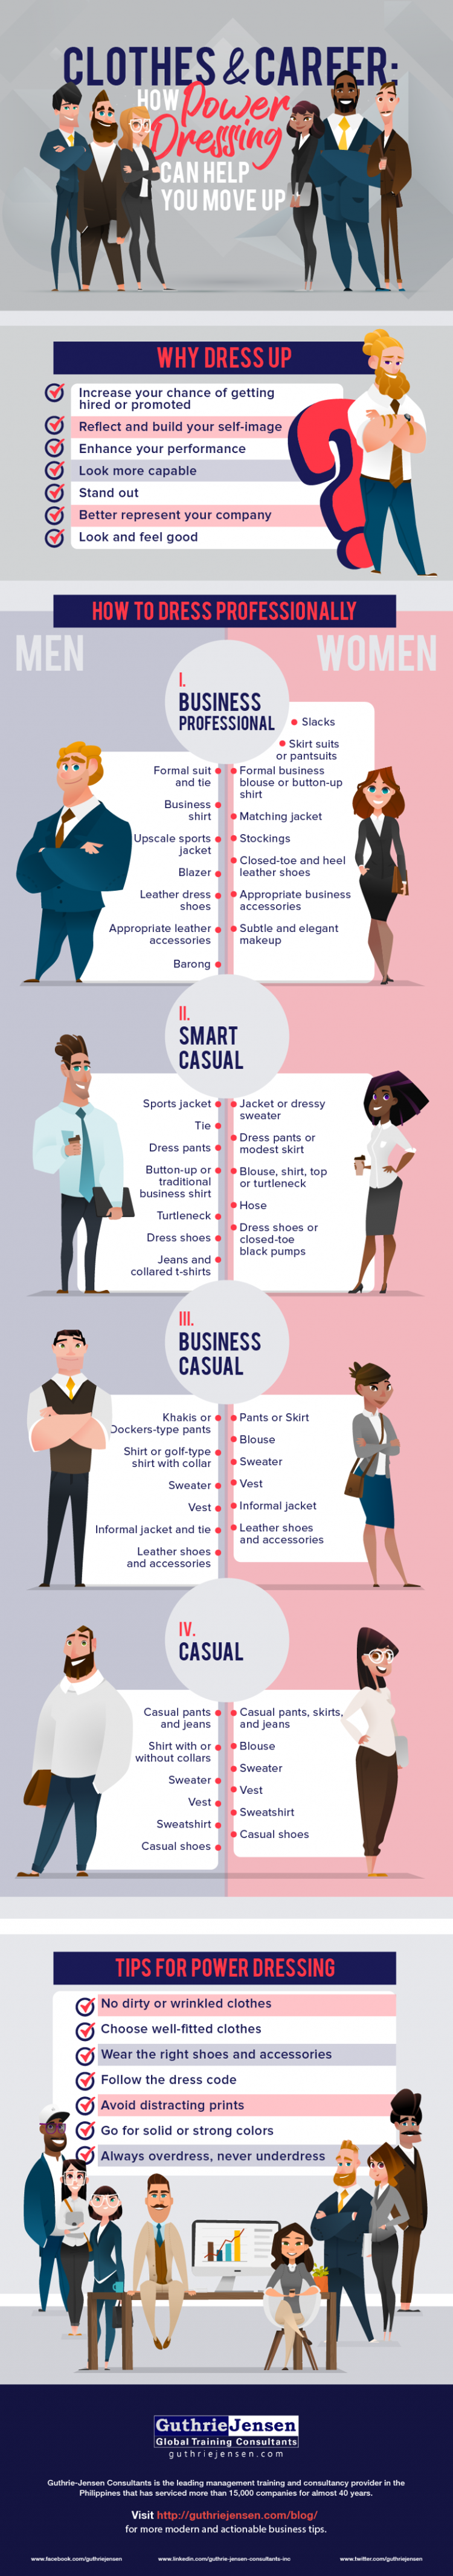 [Infographic] Clothes and Career: How Power Dressing Can Help You Move Up